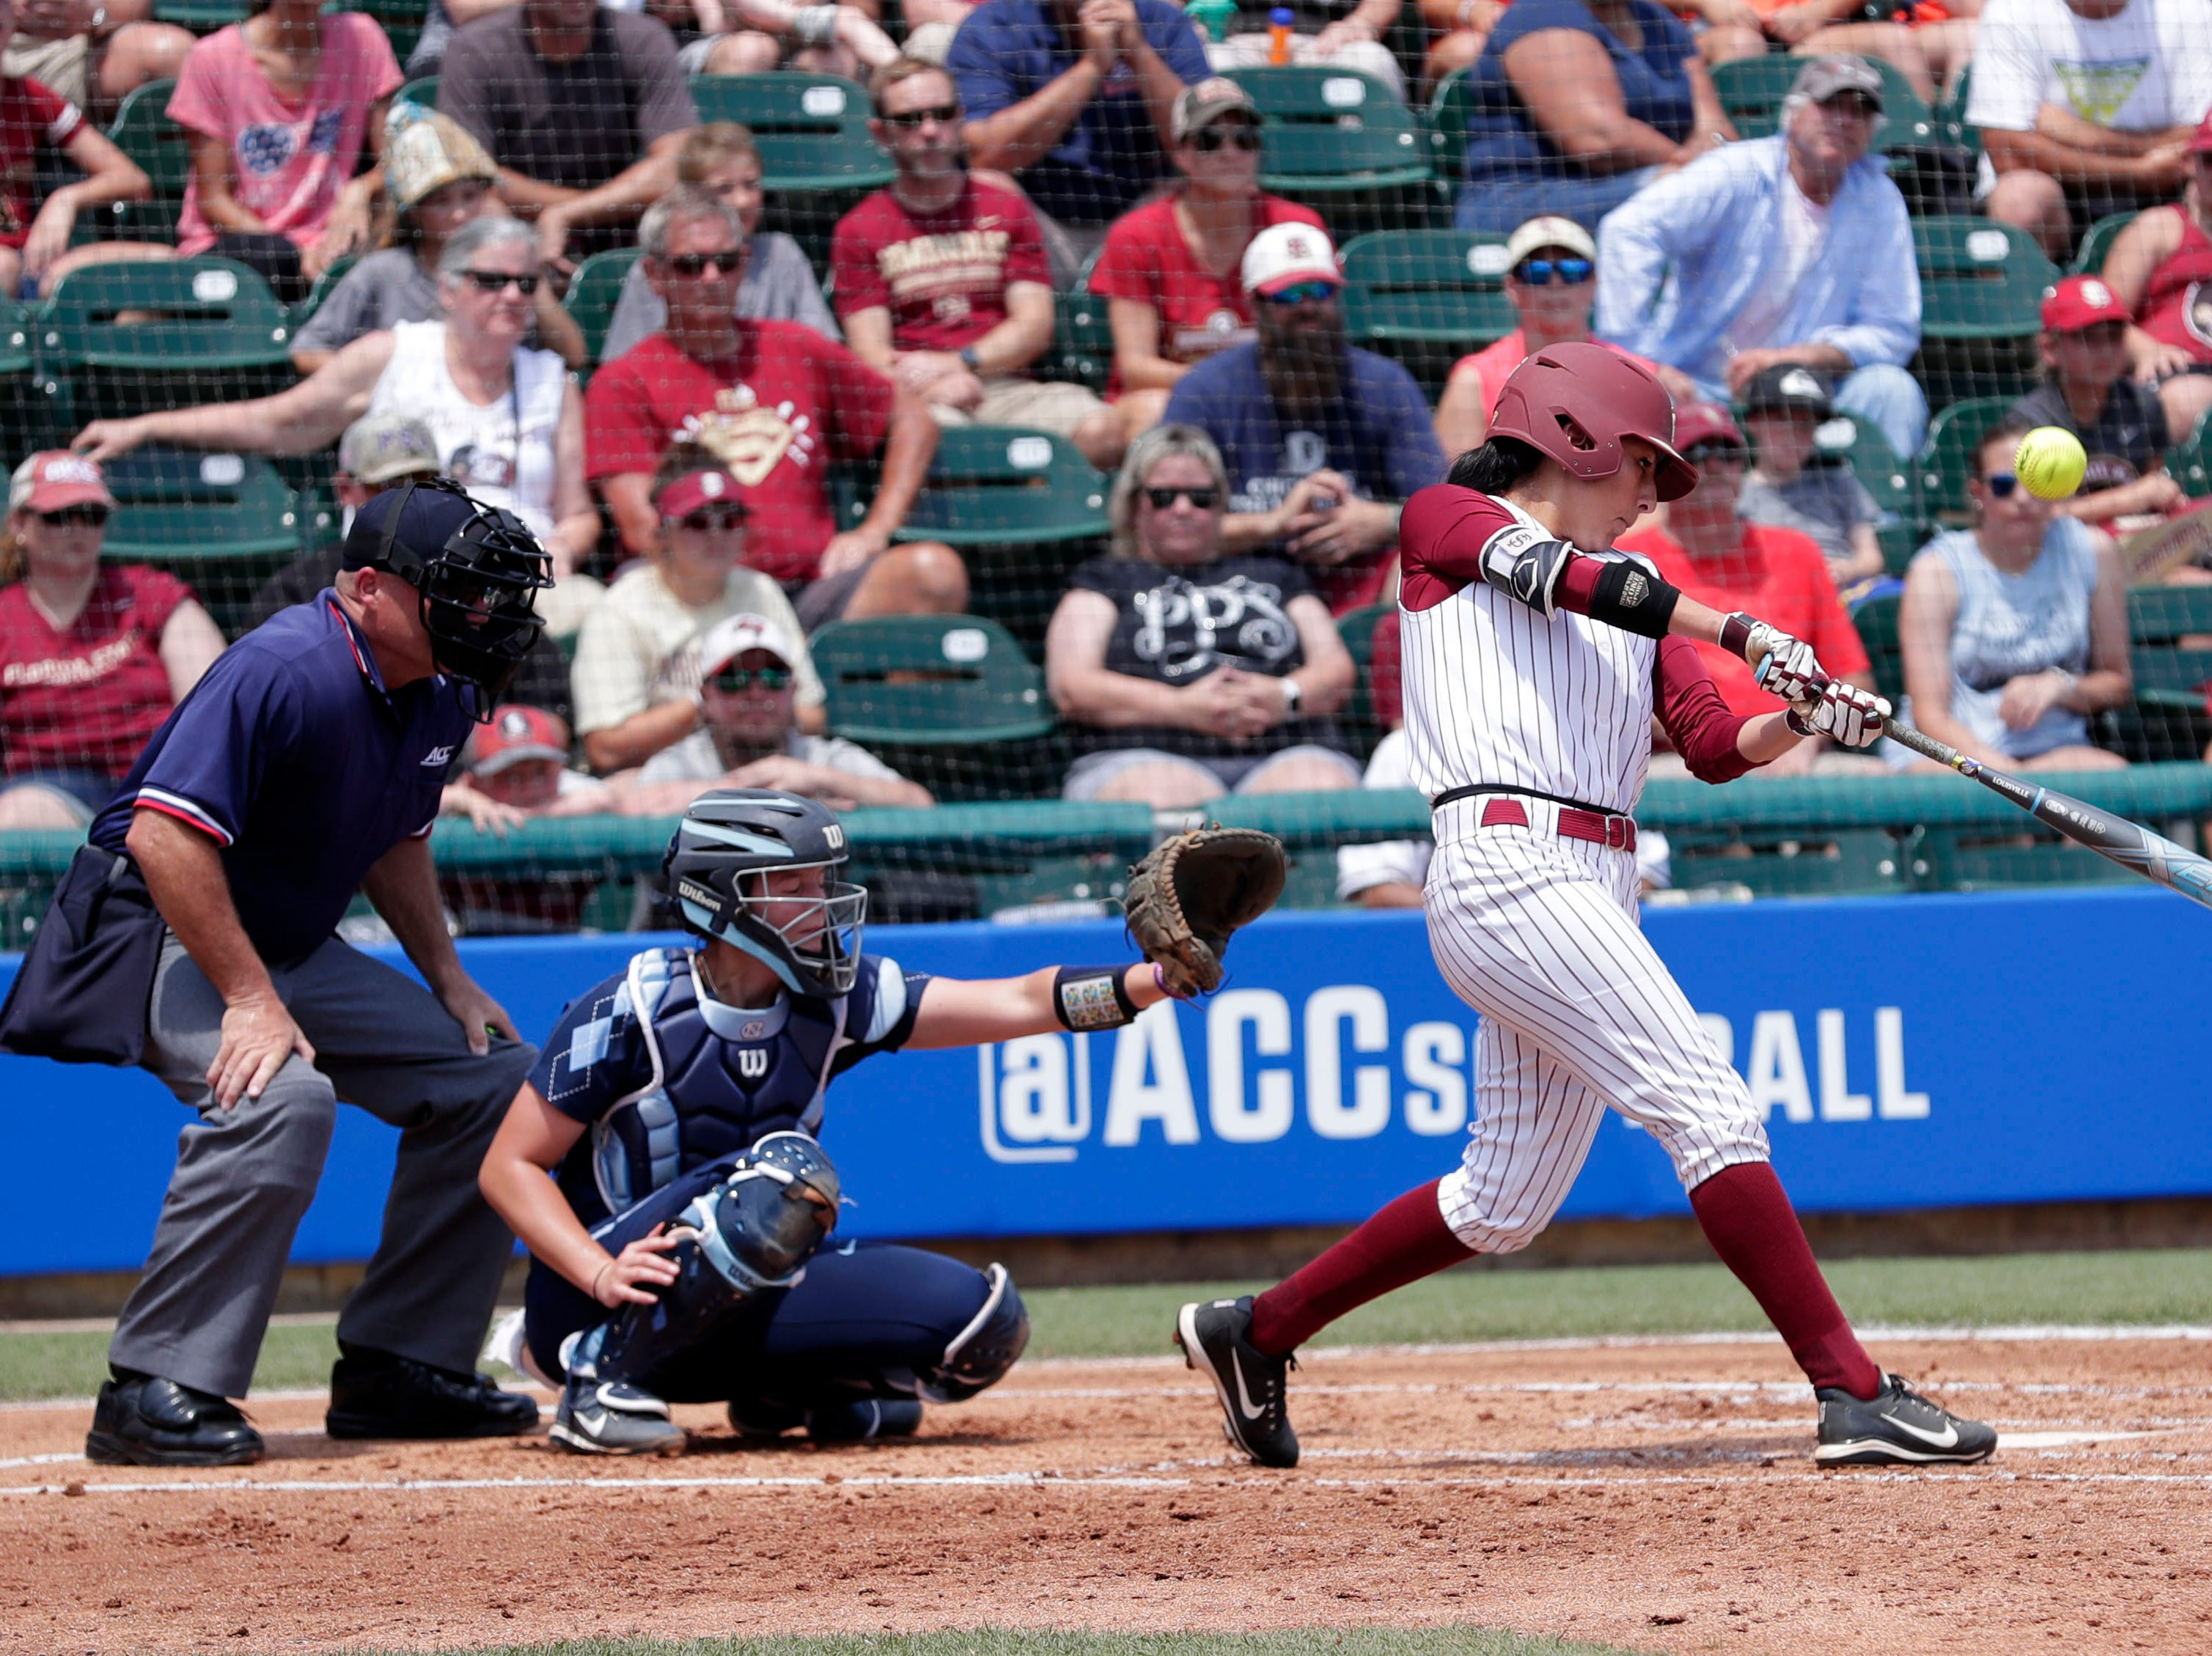 Florida State Seminoles outfielder Zoe Casas (6) makes contact on her swing. The Florida State Seminoles host the UNC Tar Heels for the ACC Softball Tournament finals Saturday, May 11, 2019.